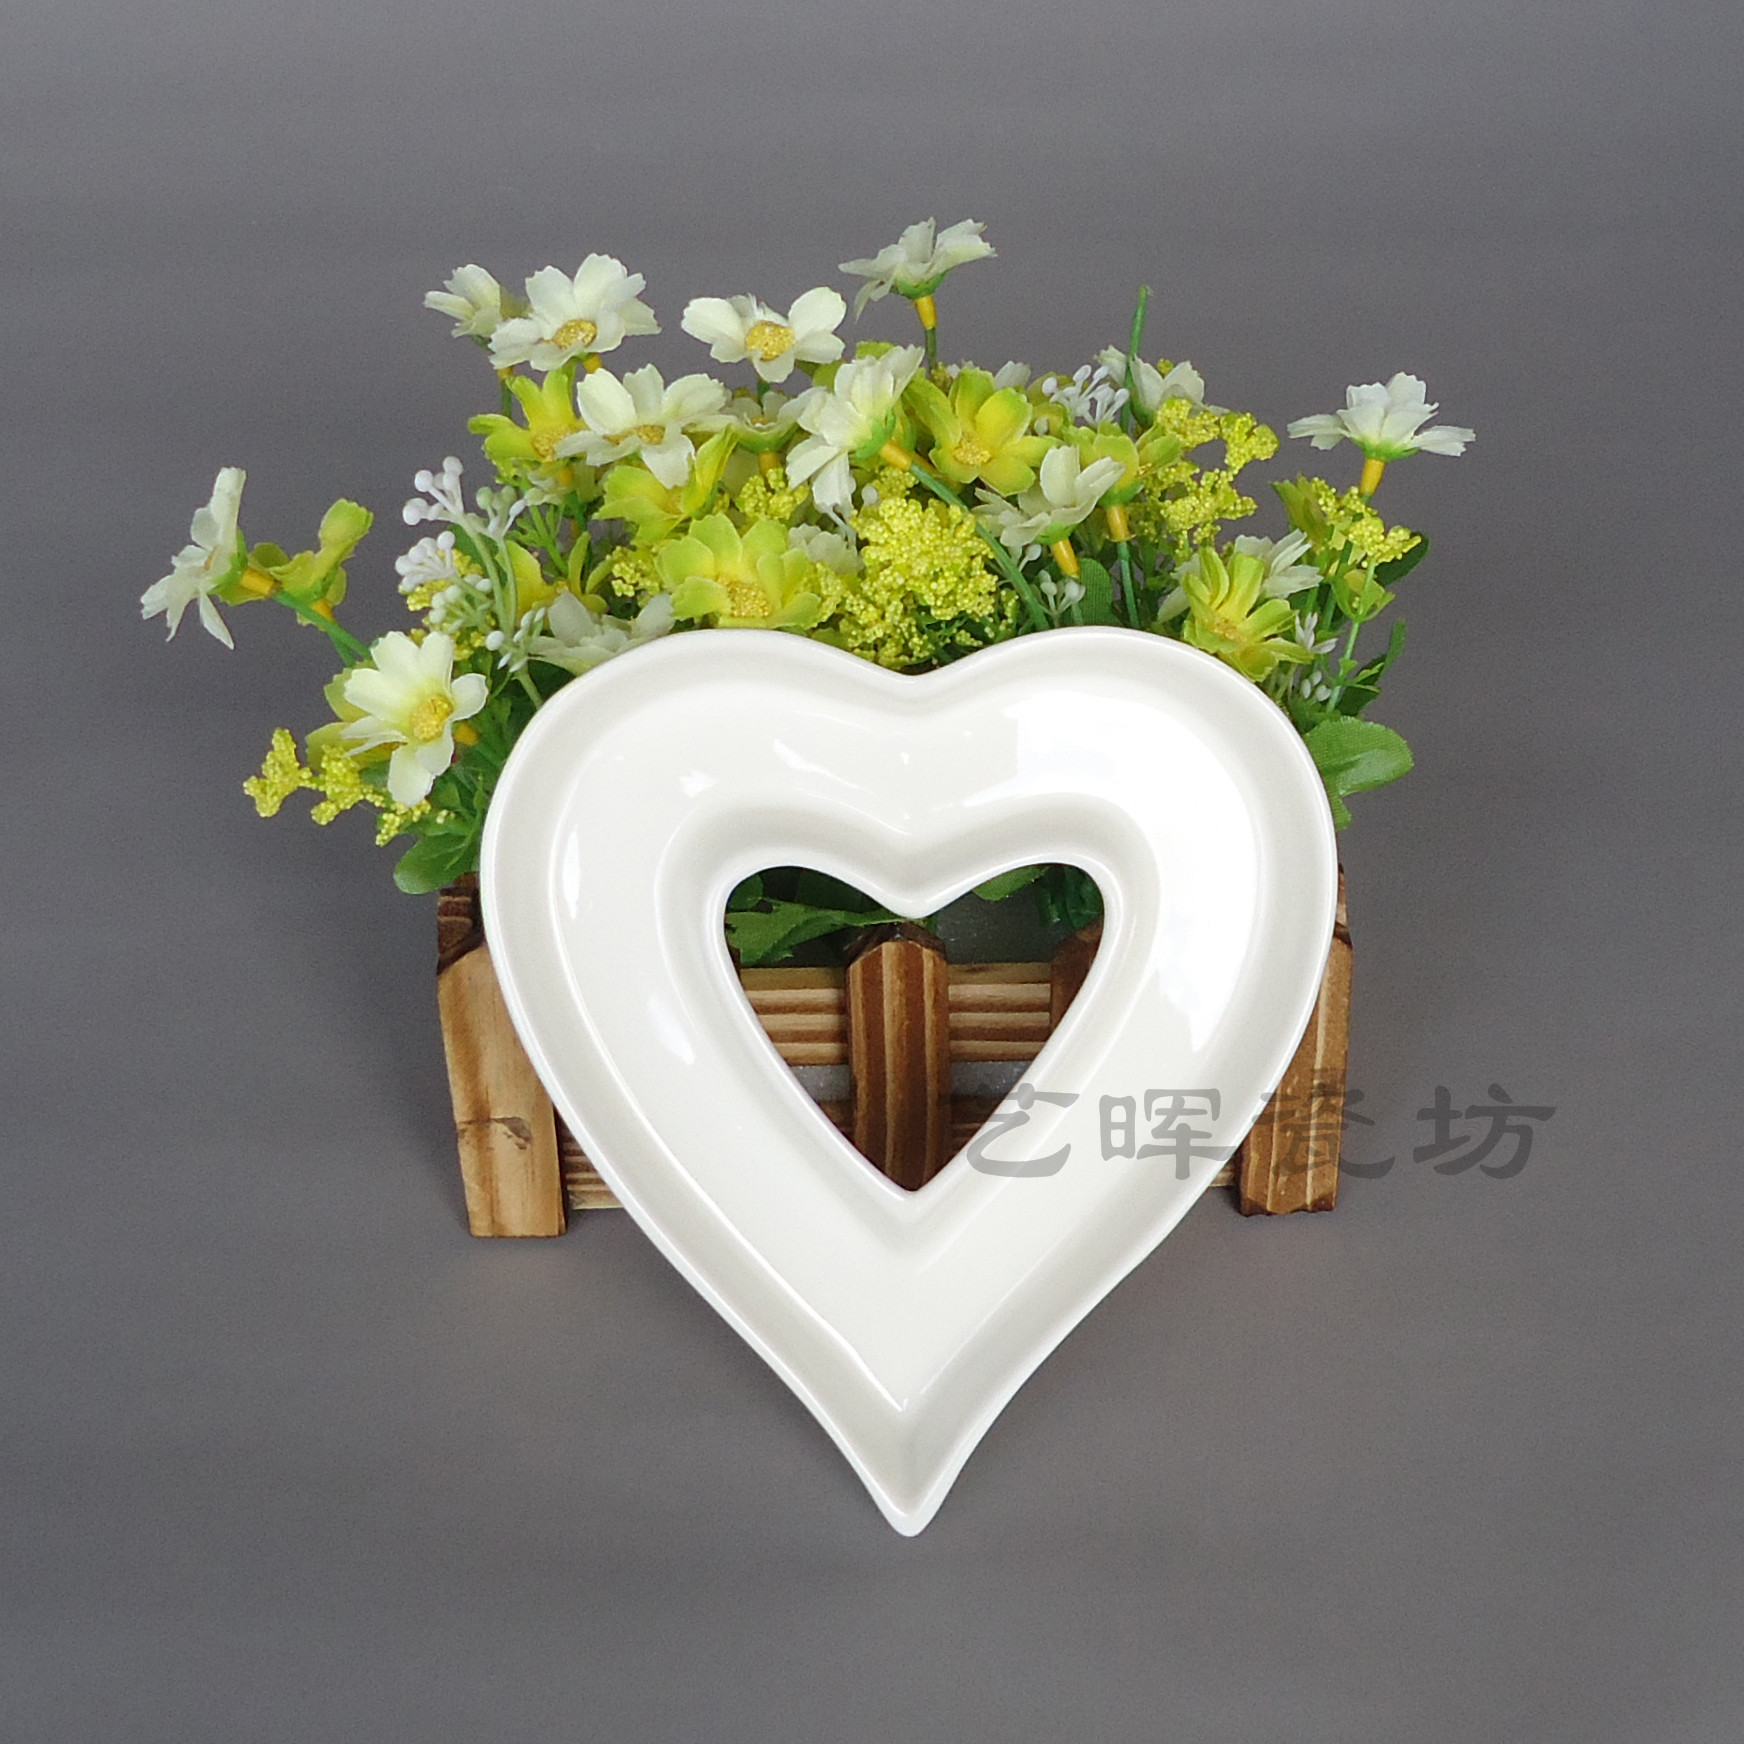 Heart shape ceramic letter dishes, Hot sale, Wholesale, Factory price(China (Mainland))